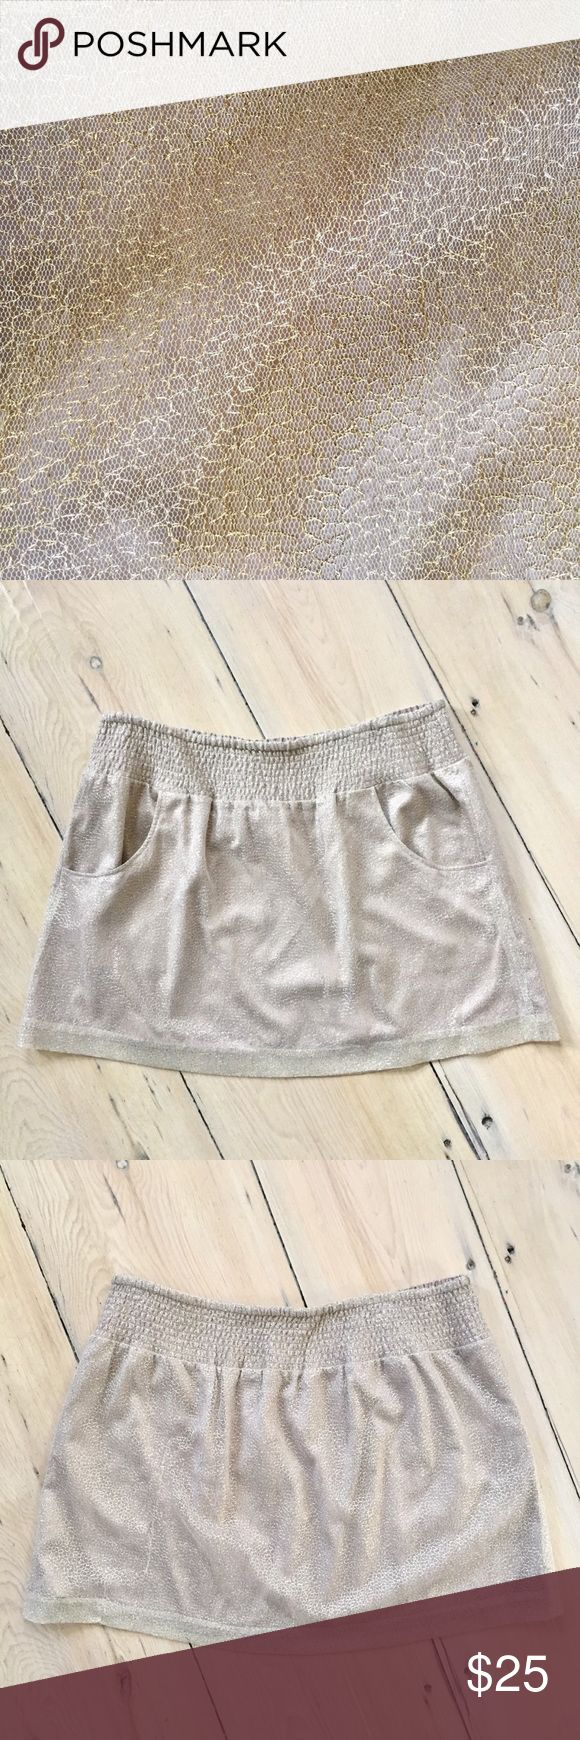 """💥HOLIDAY SALE🍗💥 price goes up 12/1 NWT GAP Gold Metallic Mini Skirt in size XL.  Shiny metallic gold on mesh overlay with elastic waistband, 2 front pockets & full lining. Contents: 85nylon/15metallic.  Measurements (laid flat): Waist: 19"""" to 26"""".  Length: 18"""".  NWT - never been worn. But there is an imperfection on the back left side on the overlay - looks like it might be a vertical pull (see last photo) so this is priced accordingly. No trades.  #171120 GAP Skirts Mini"""